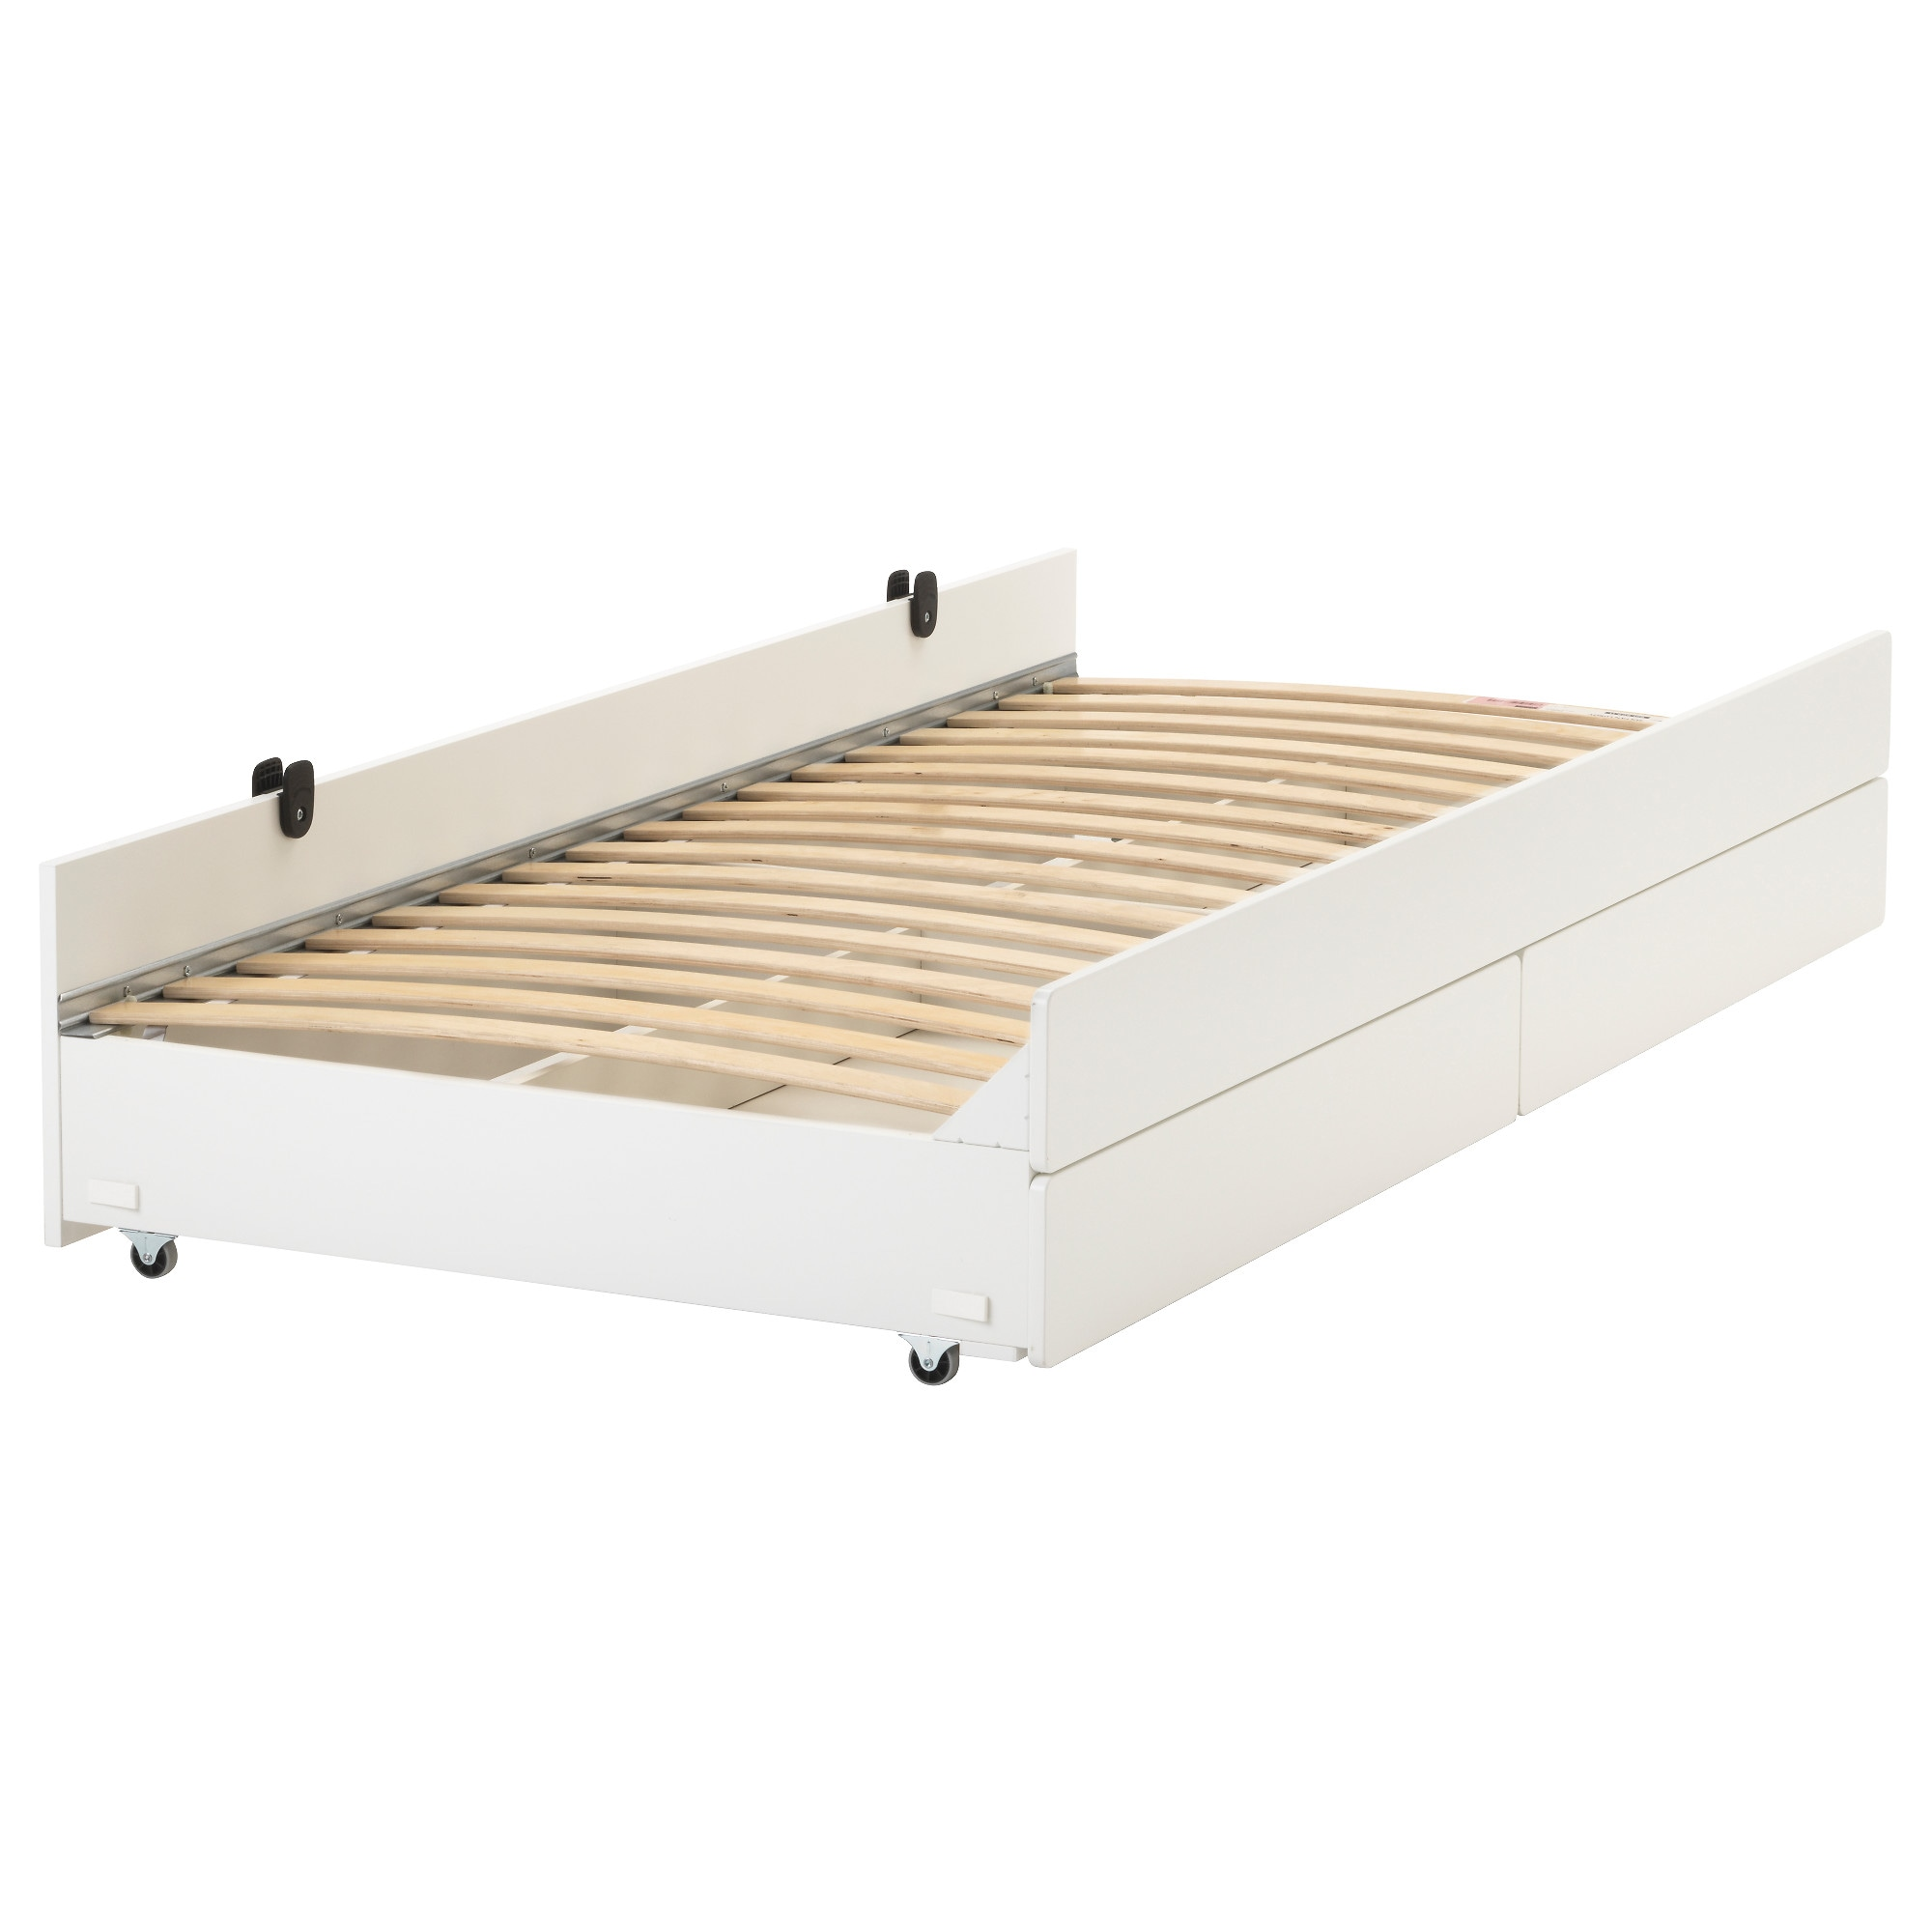 "SL""KT Pull out bed with storage IKEA"